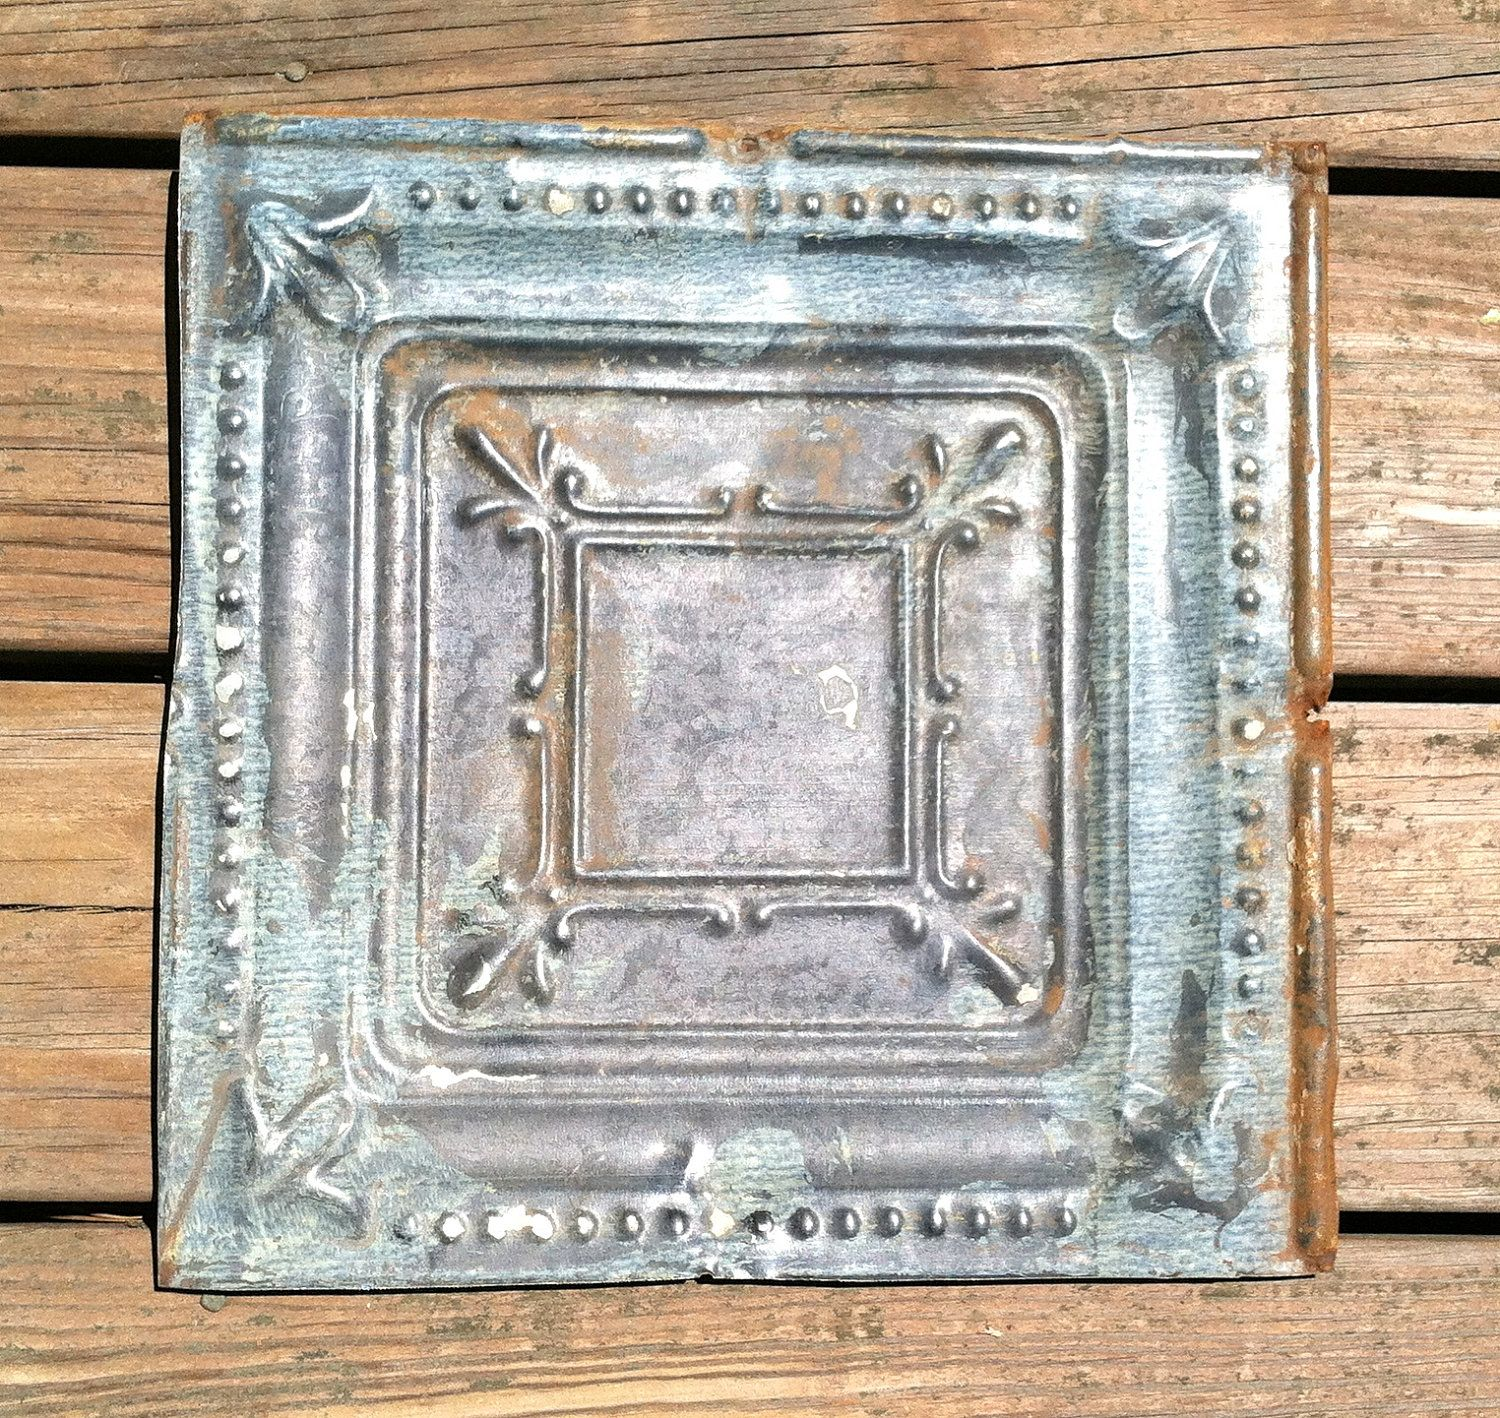 Vintage pressed tin ceiling tile 12in by 12in grade b 1300 via vintage pressed tin ceiling tile 12in by 12in grade b 1300 via etsy dailygadgetfo Image collections